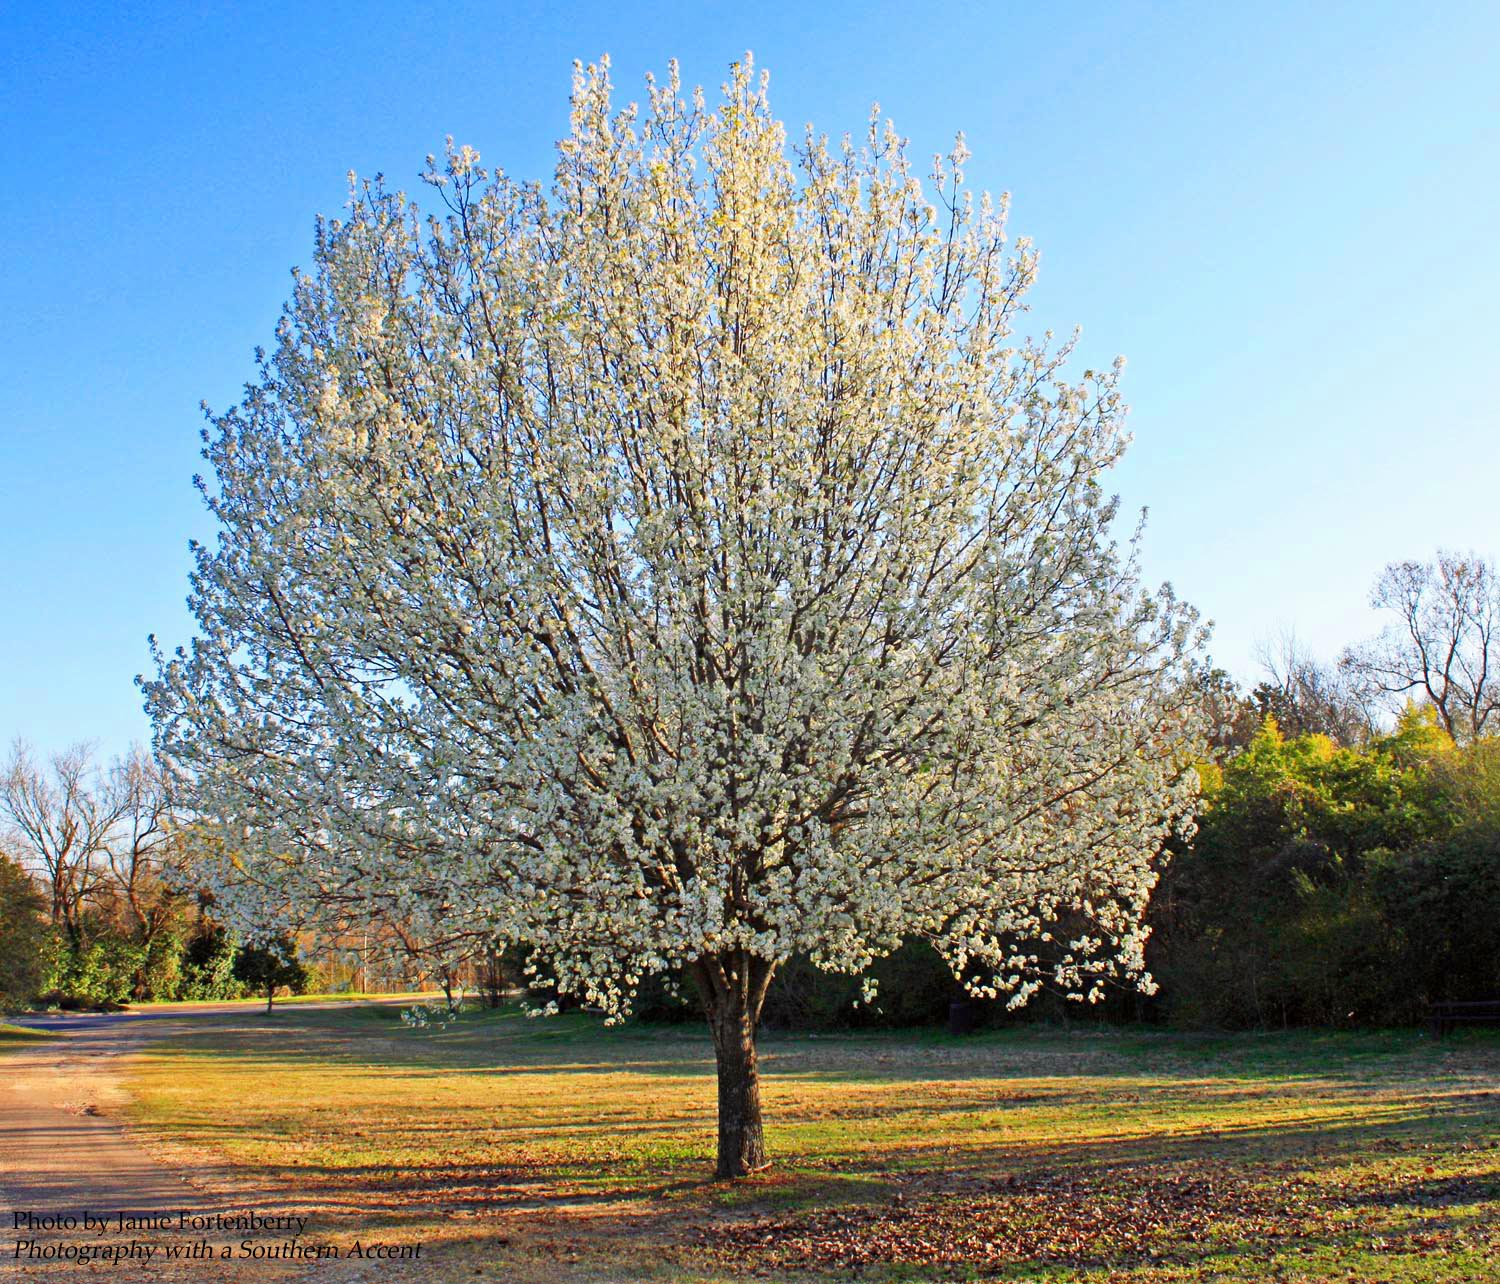 Southern lagniappe in sweet anticipation Bradford pear